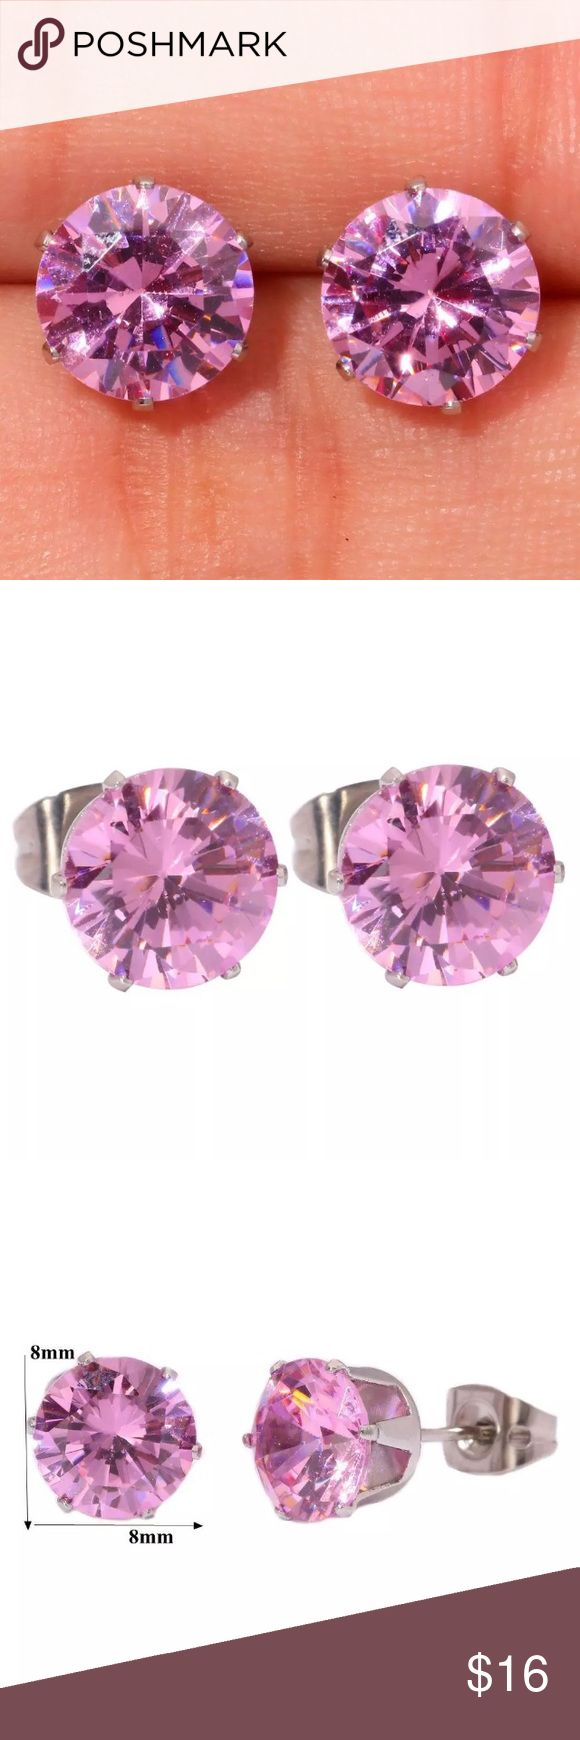 8mm Pink Topaz Gemstone & Stainless Steel Earrings Boutique